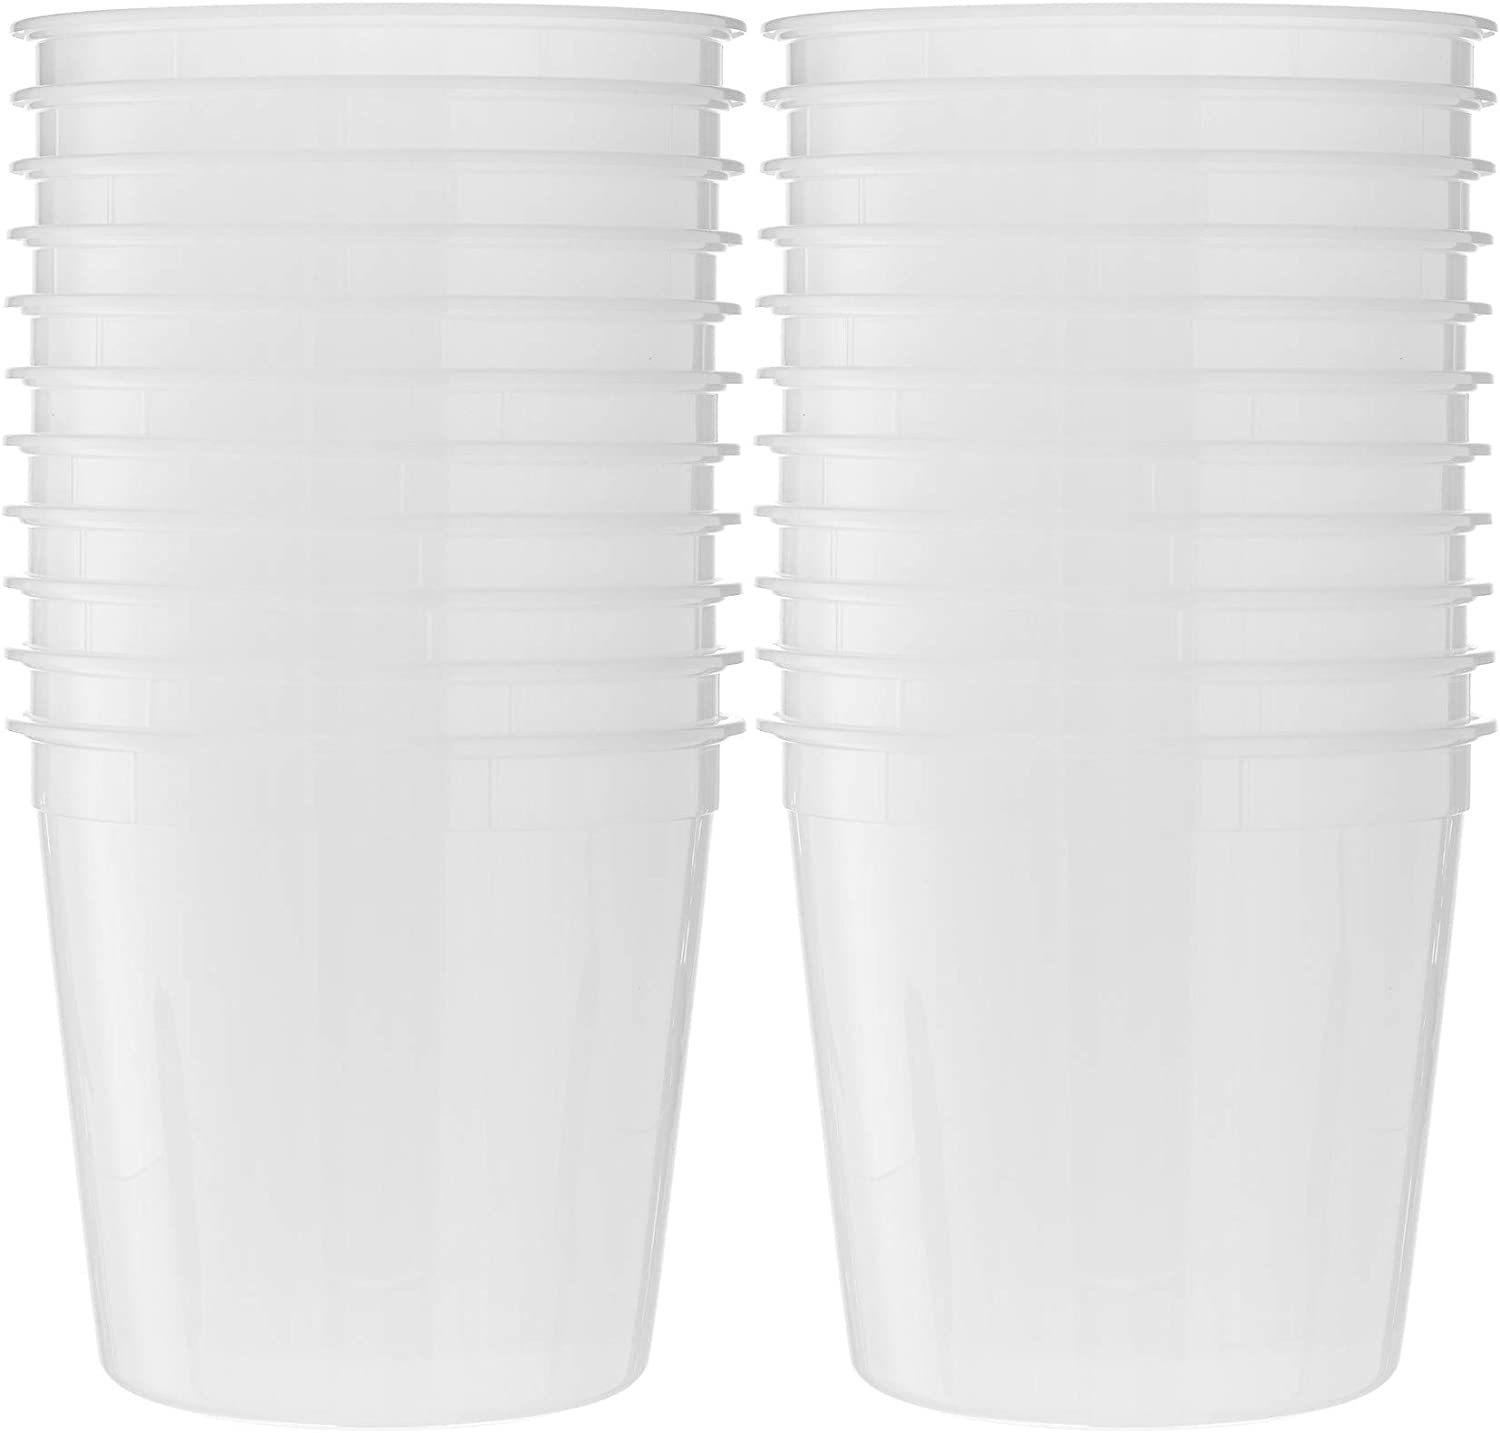 Basix Round Clear Food Storage Deli Container With Lids, Perfect For Meal Prep Soup, Ice Cream, Freezer, Dishwasher And Microwave Safe [20 Count 168 Oz Combo]